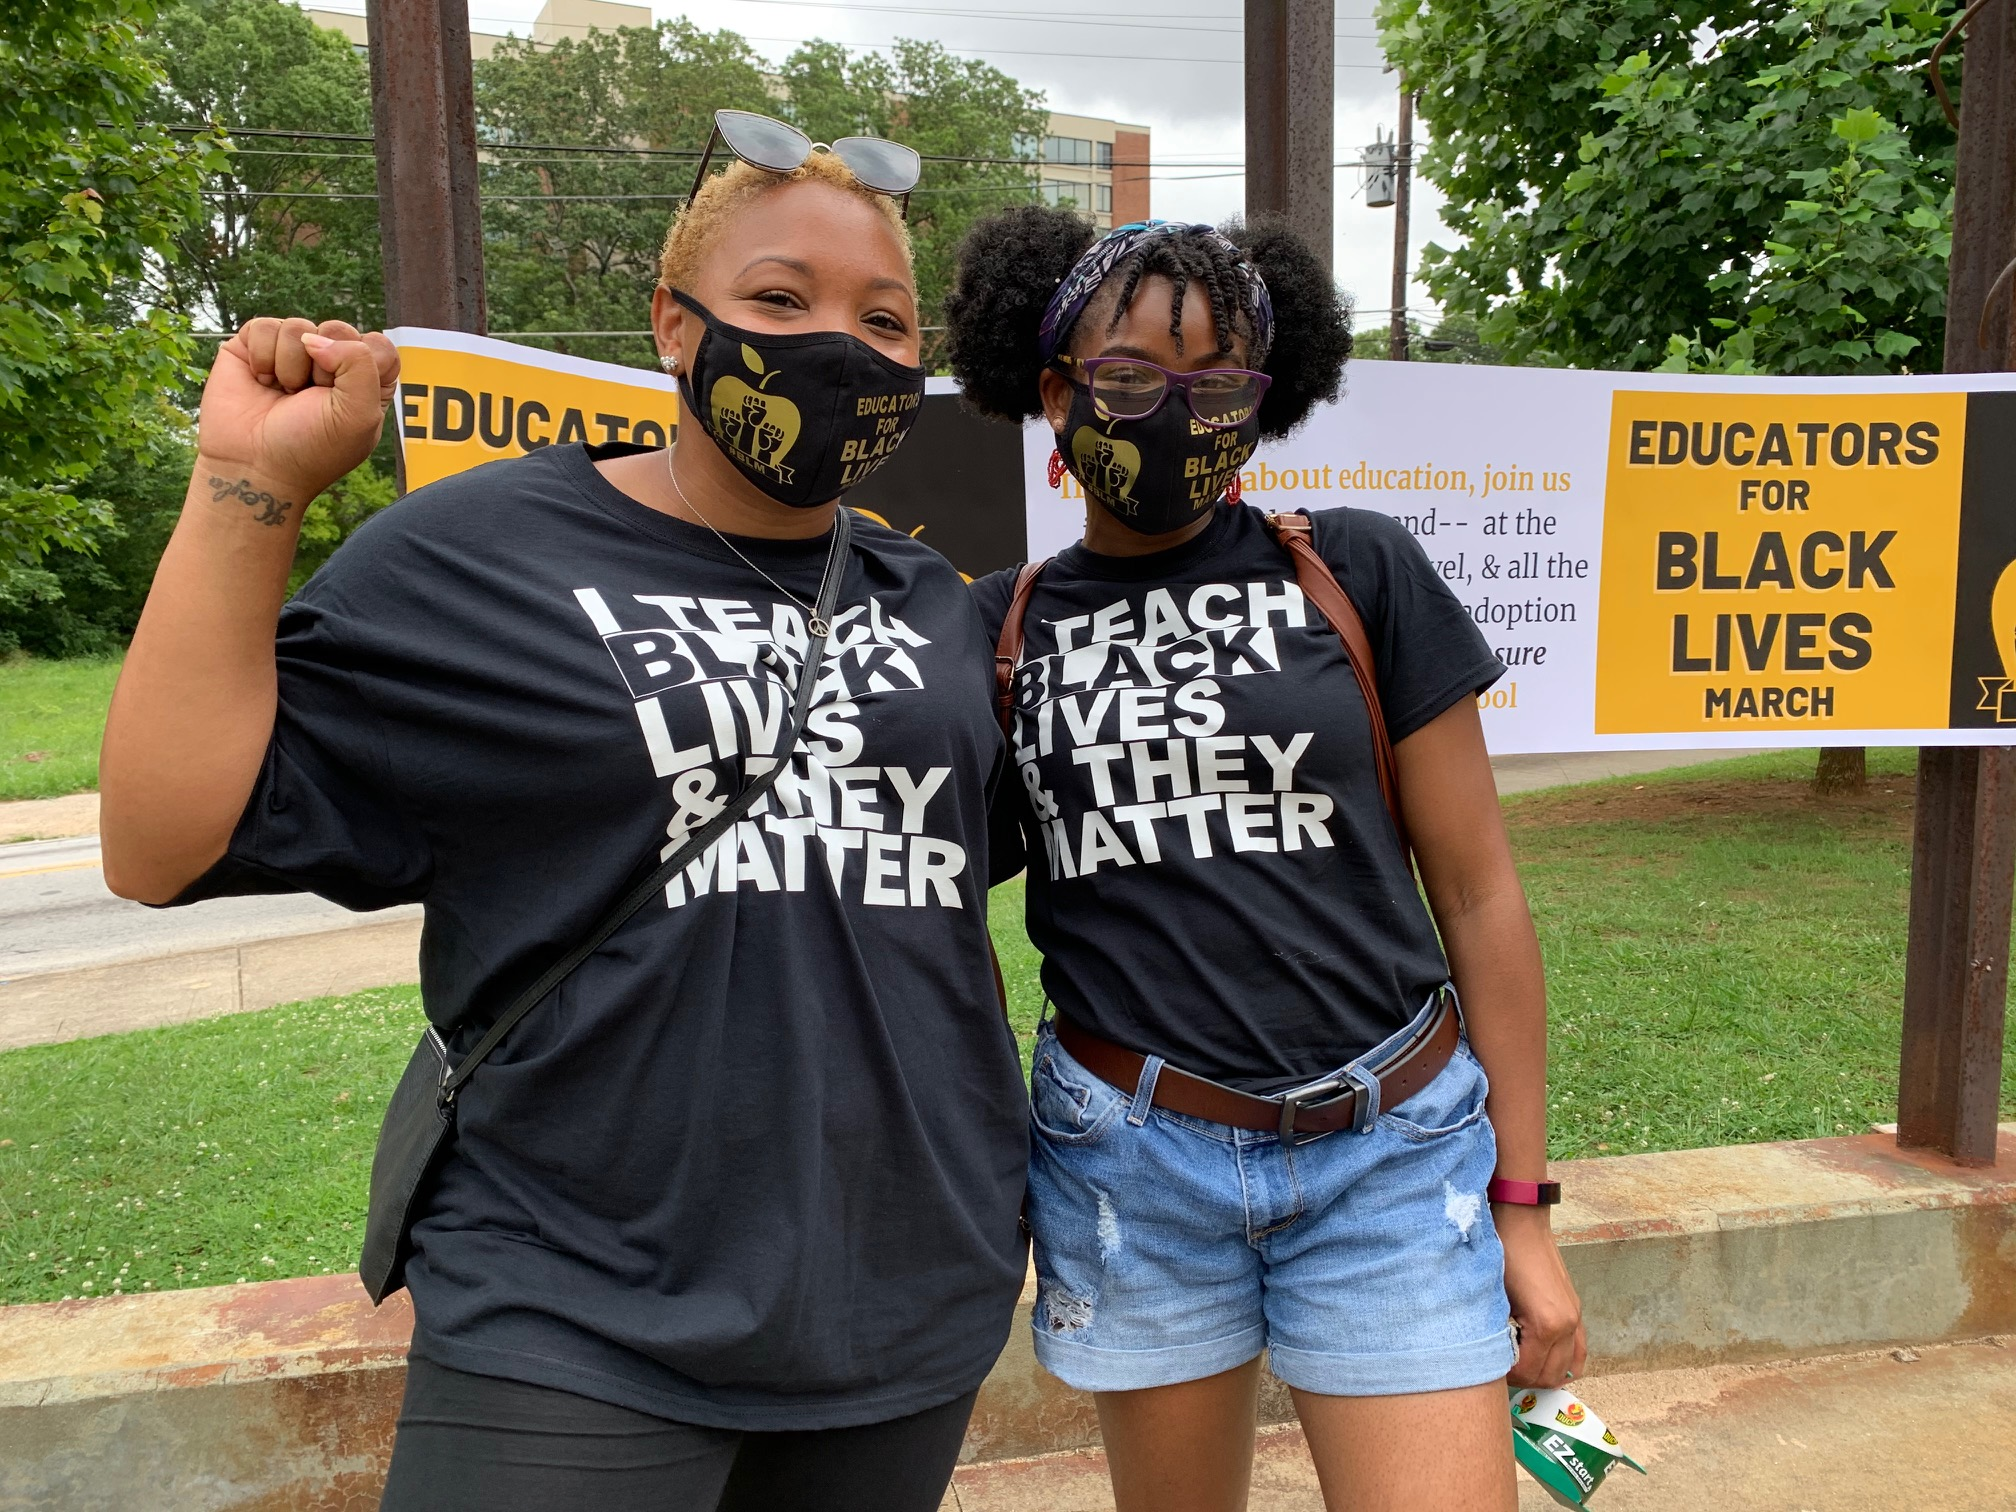 EduBlackLives_04